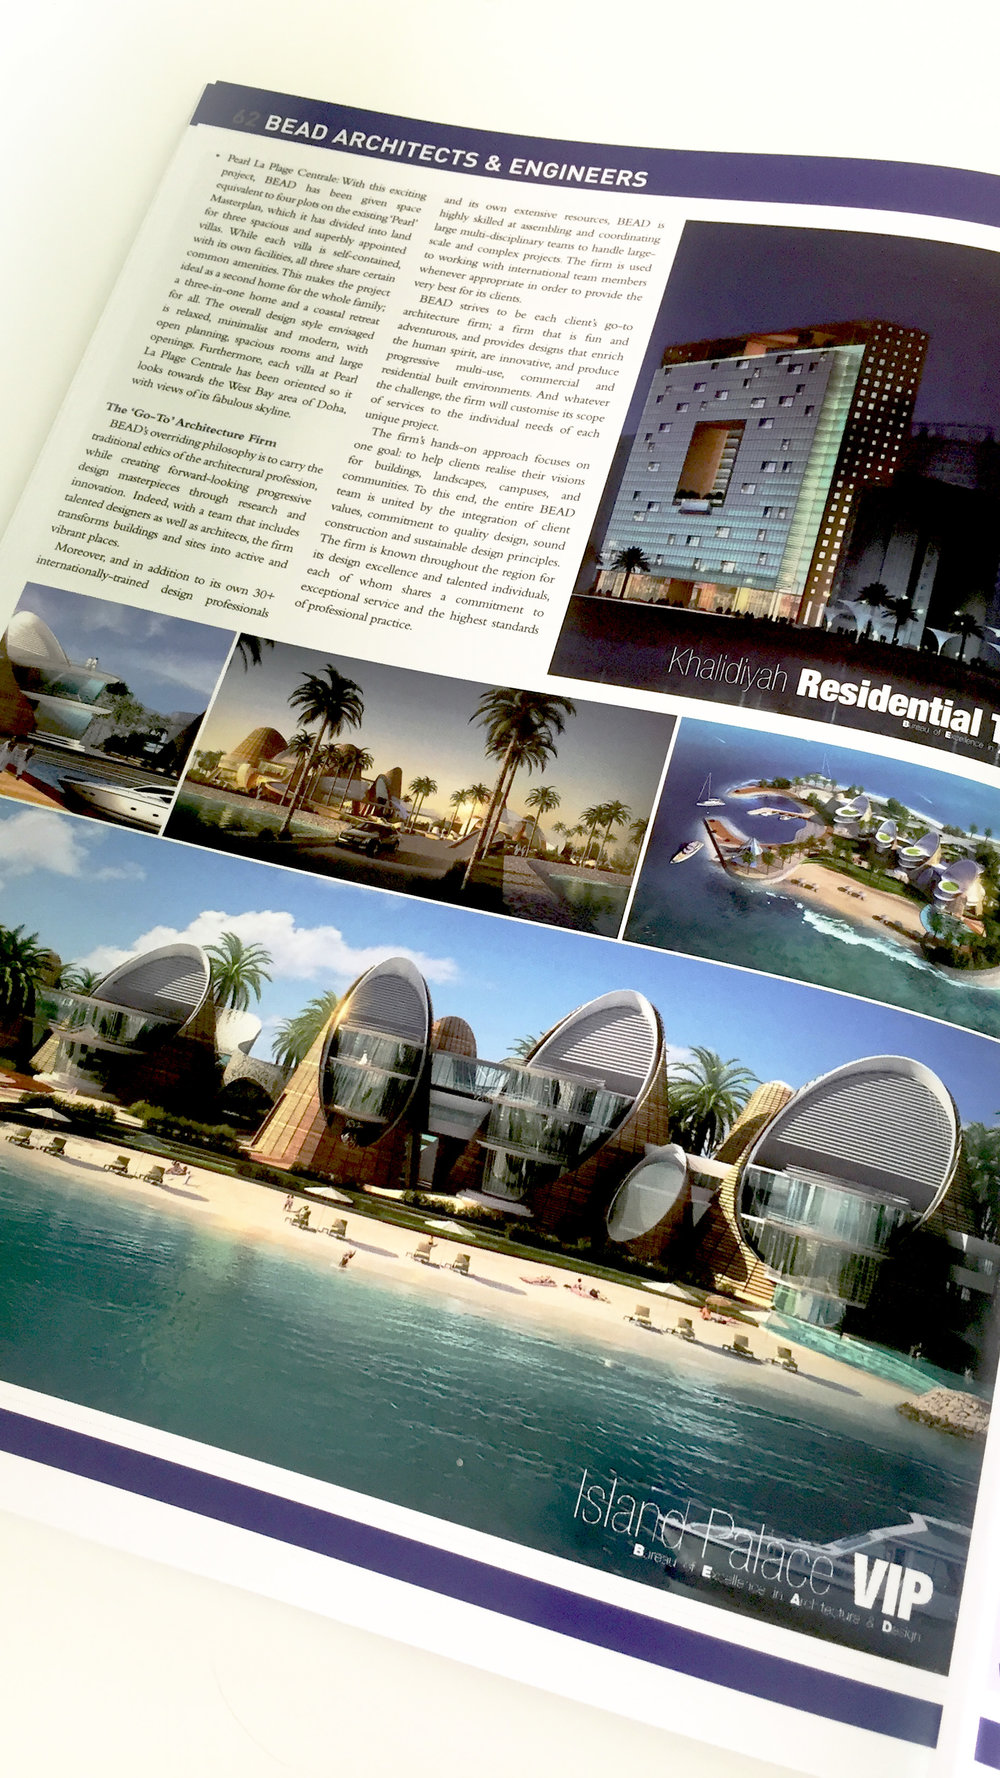 p3 emirates projects magazine.JPG